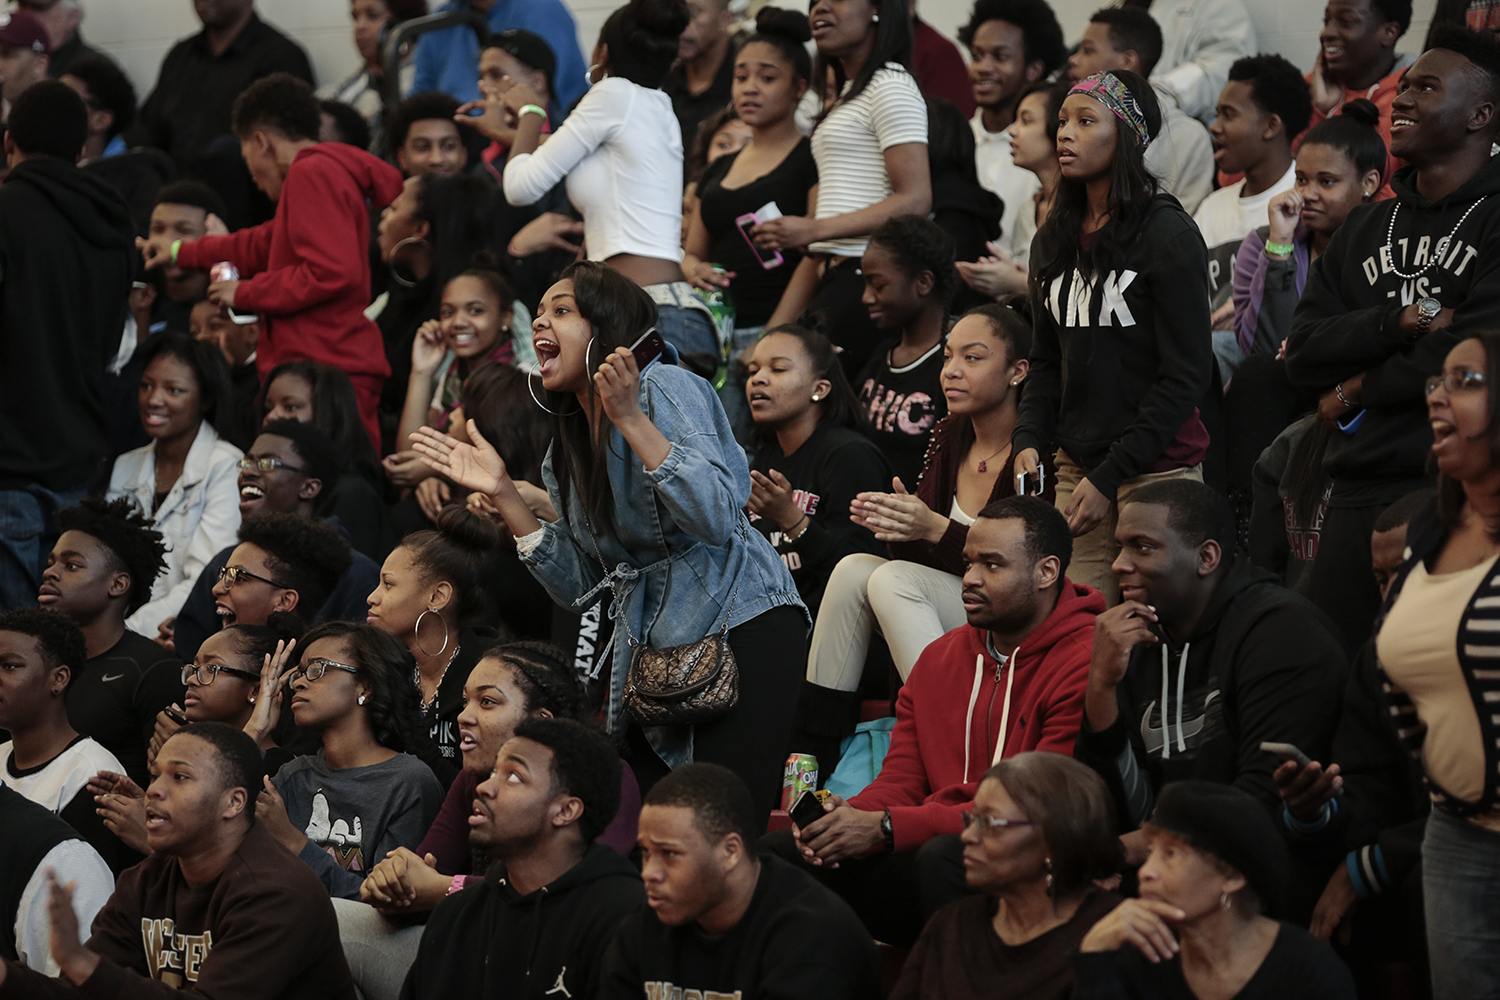 Fans cheer during the Detroit Renaissance vs, U of D Jesuit district semi-final boys' basketball game on Wednesday, March 11, 2015 at Detroit Renaissance High School in Detroit. U of D Jesuit beat Detroit Renaissance 66 to 53. Tim Galloway/Special for DFP